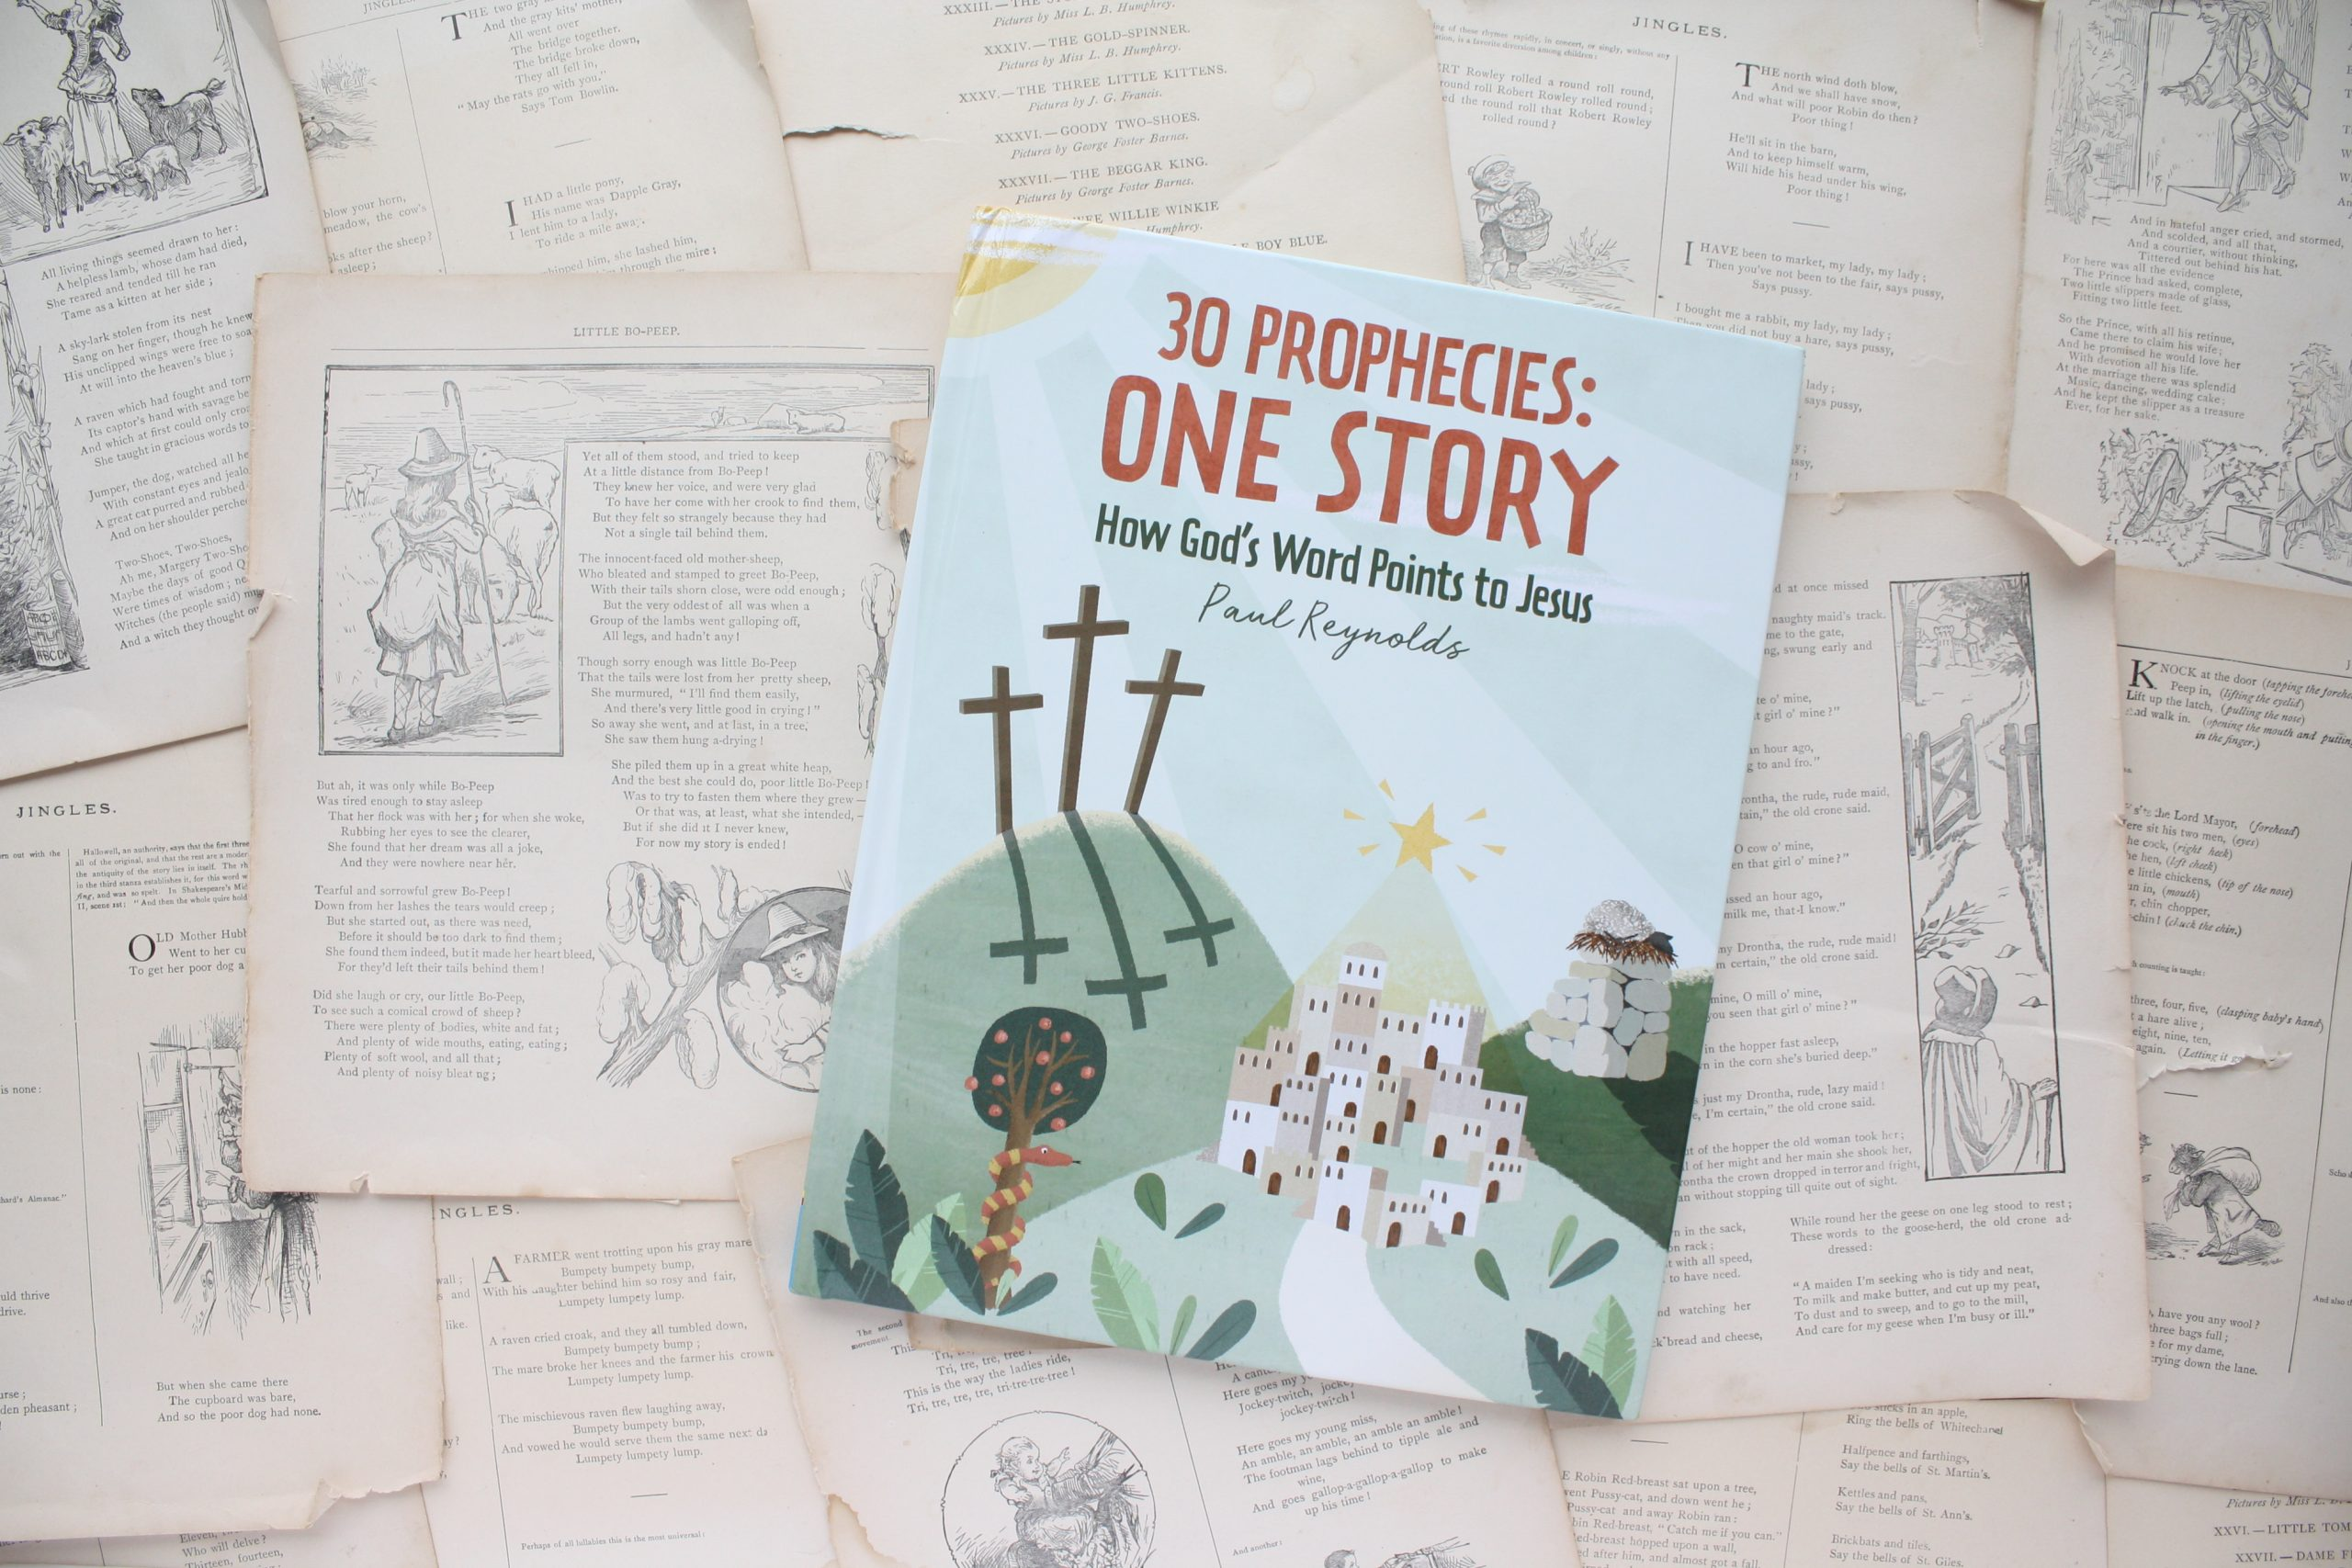 30 Prophecies: One Story | Paul Reynolds